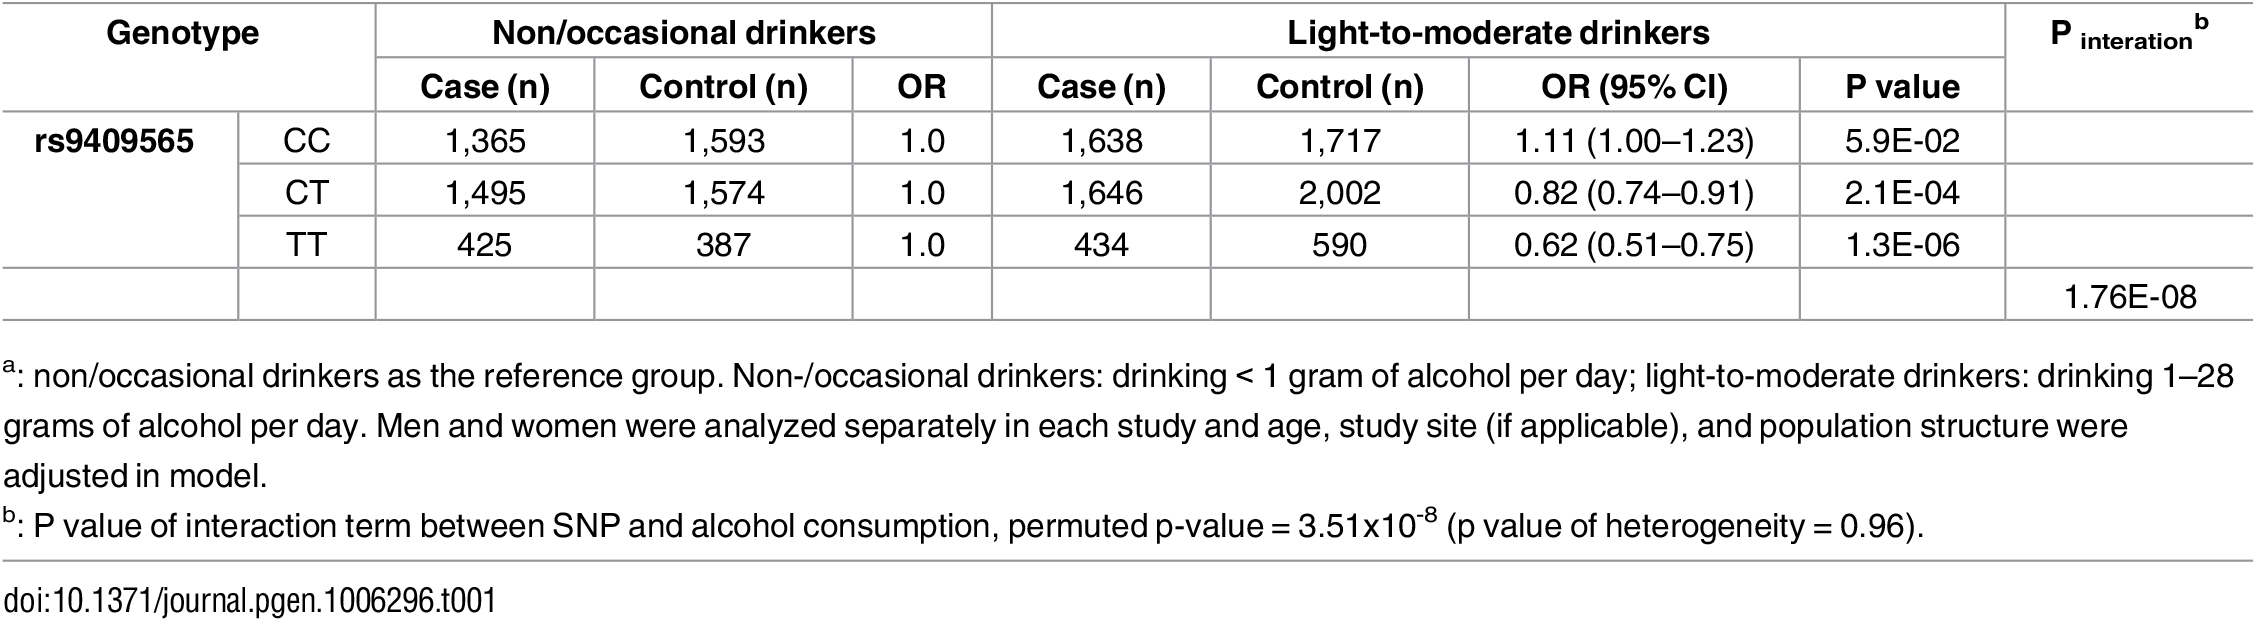 Stratification analyses<em class=&quot;ref&quot;><sup>a</sup></em> by genotypes of rs9409565 for the association between alcohol consumption and CRC.